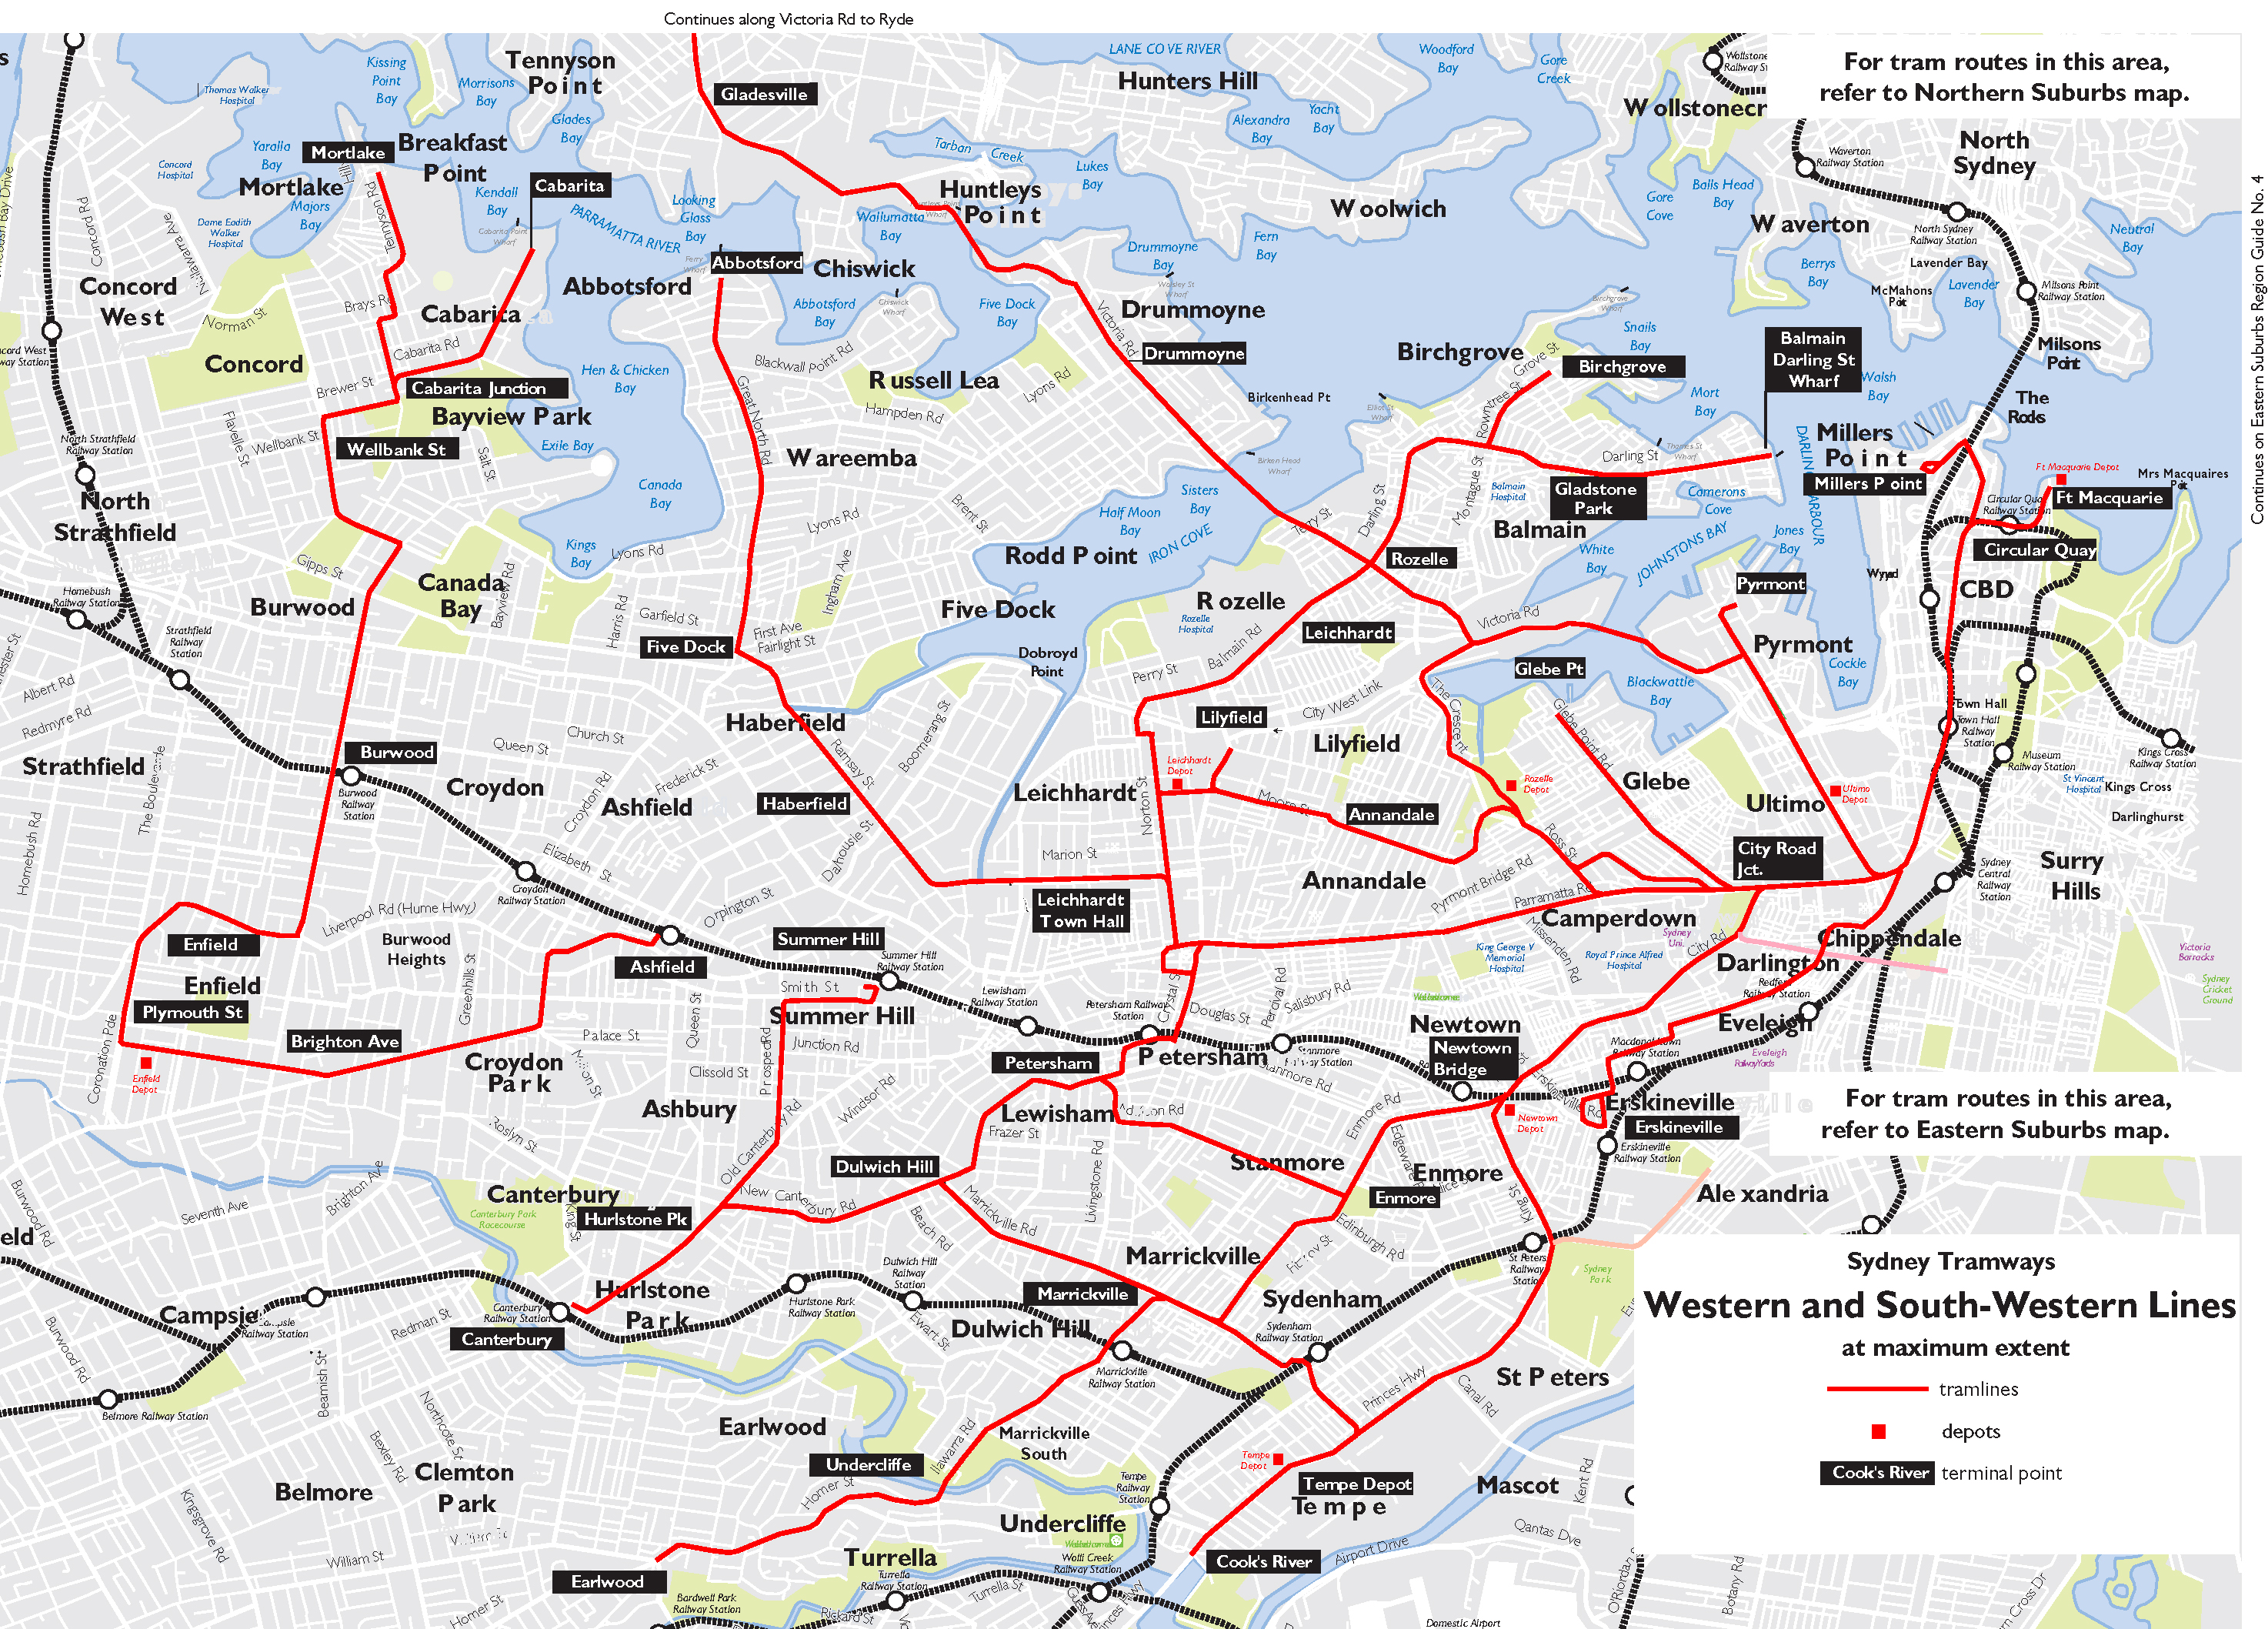 Map Showing Trams In The West And Southwest Of Sydney At